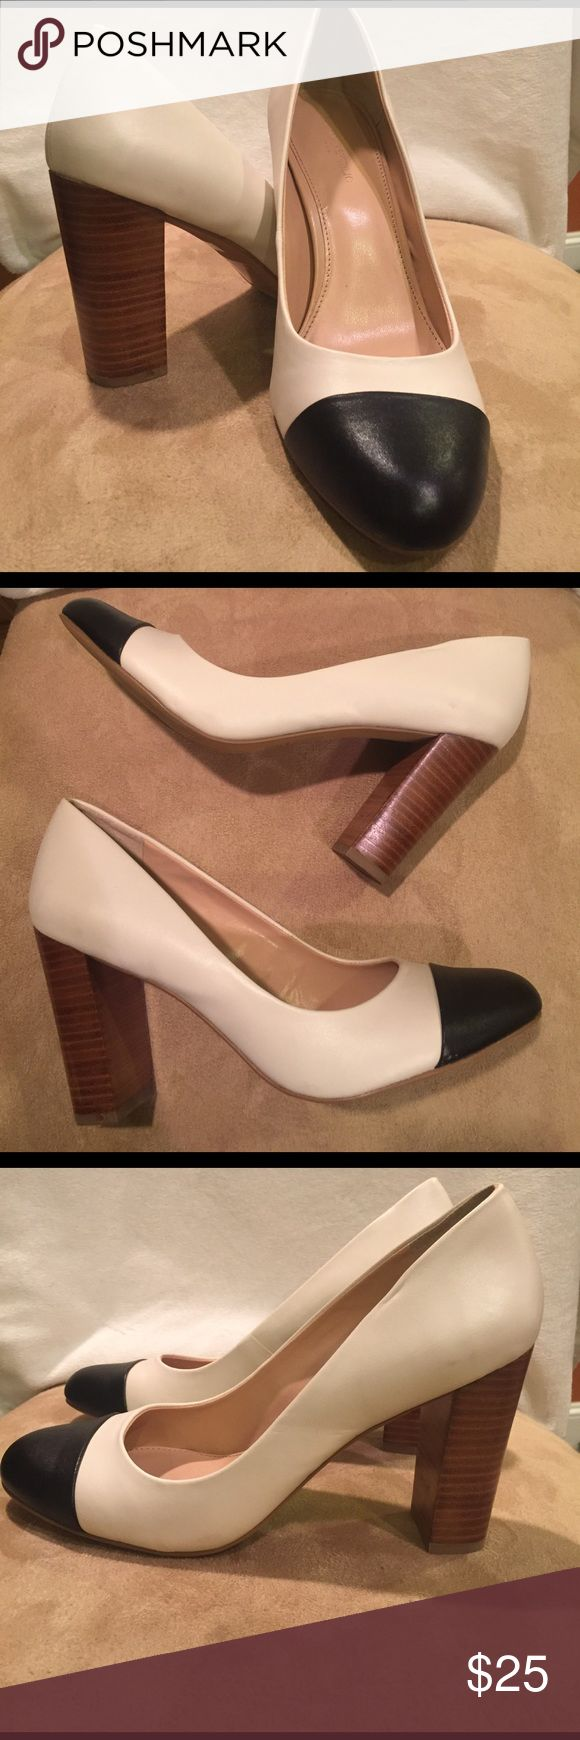 Banana Republic Pumps Cream pumps with Black Cape Toe. Gently used with minor scuff marks. Banana Republic Shoes Heels